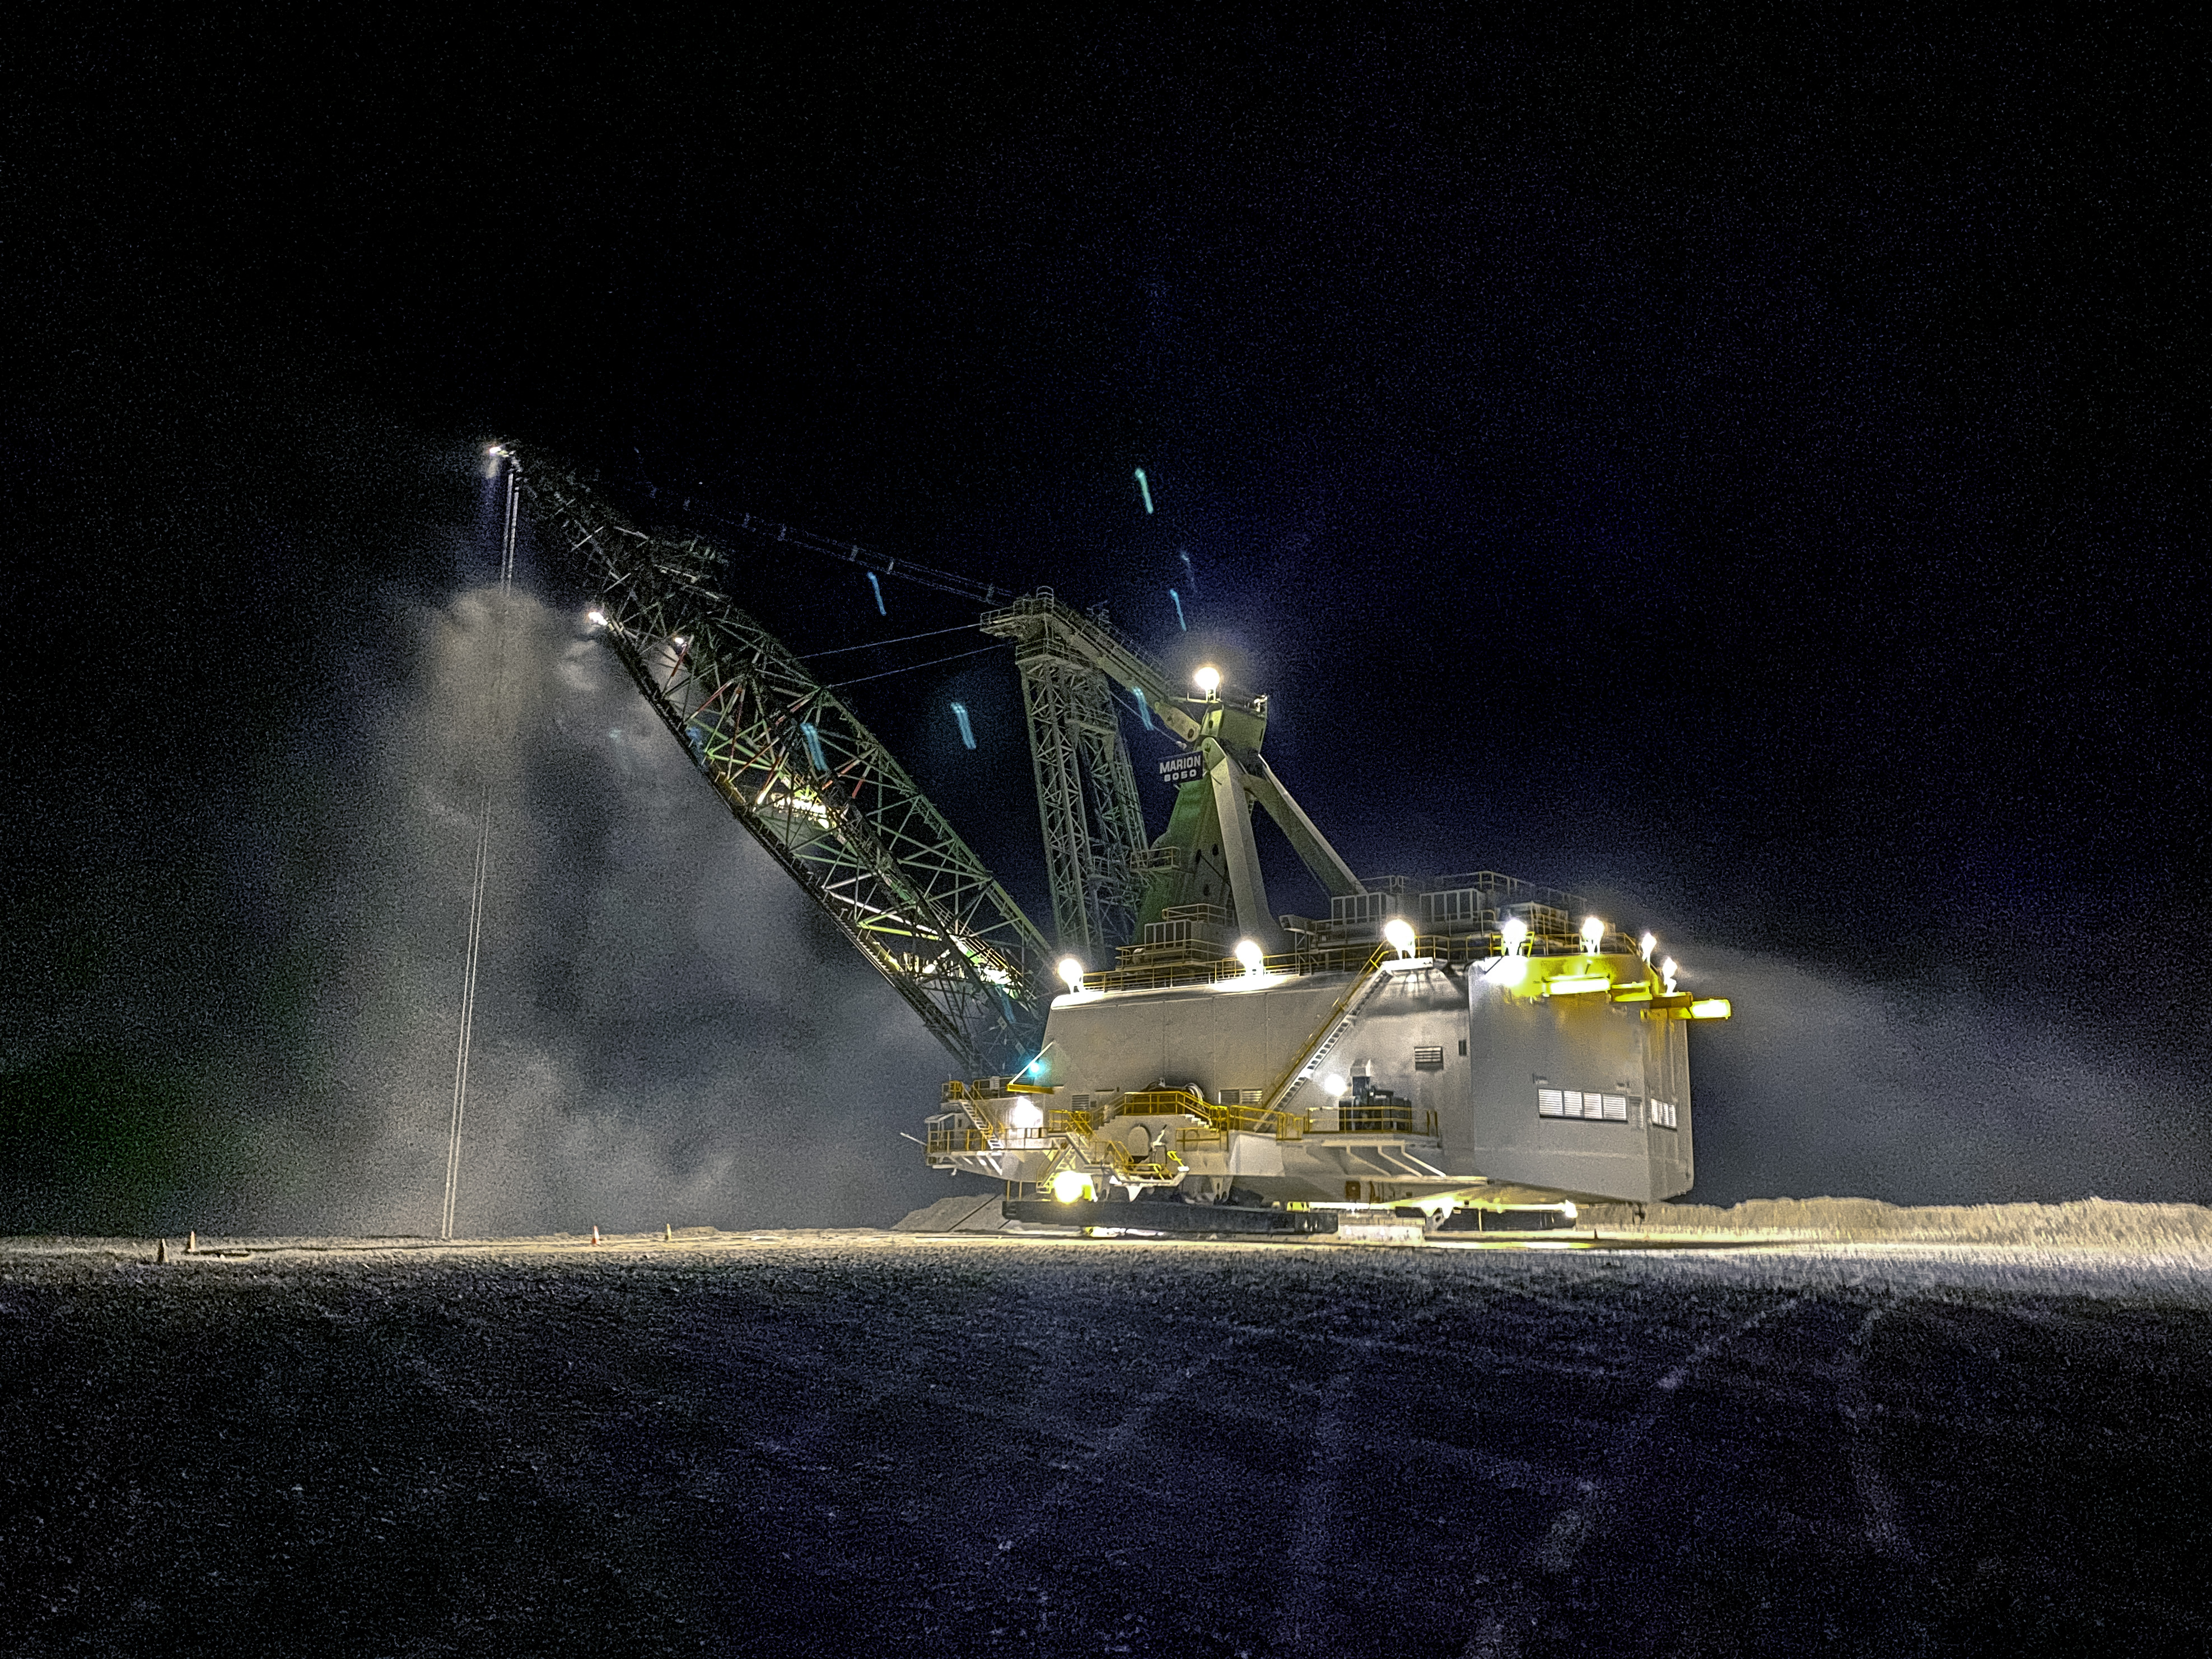 Marion 8050 dragline working at night, lit up with Coolon XBlades.